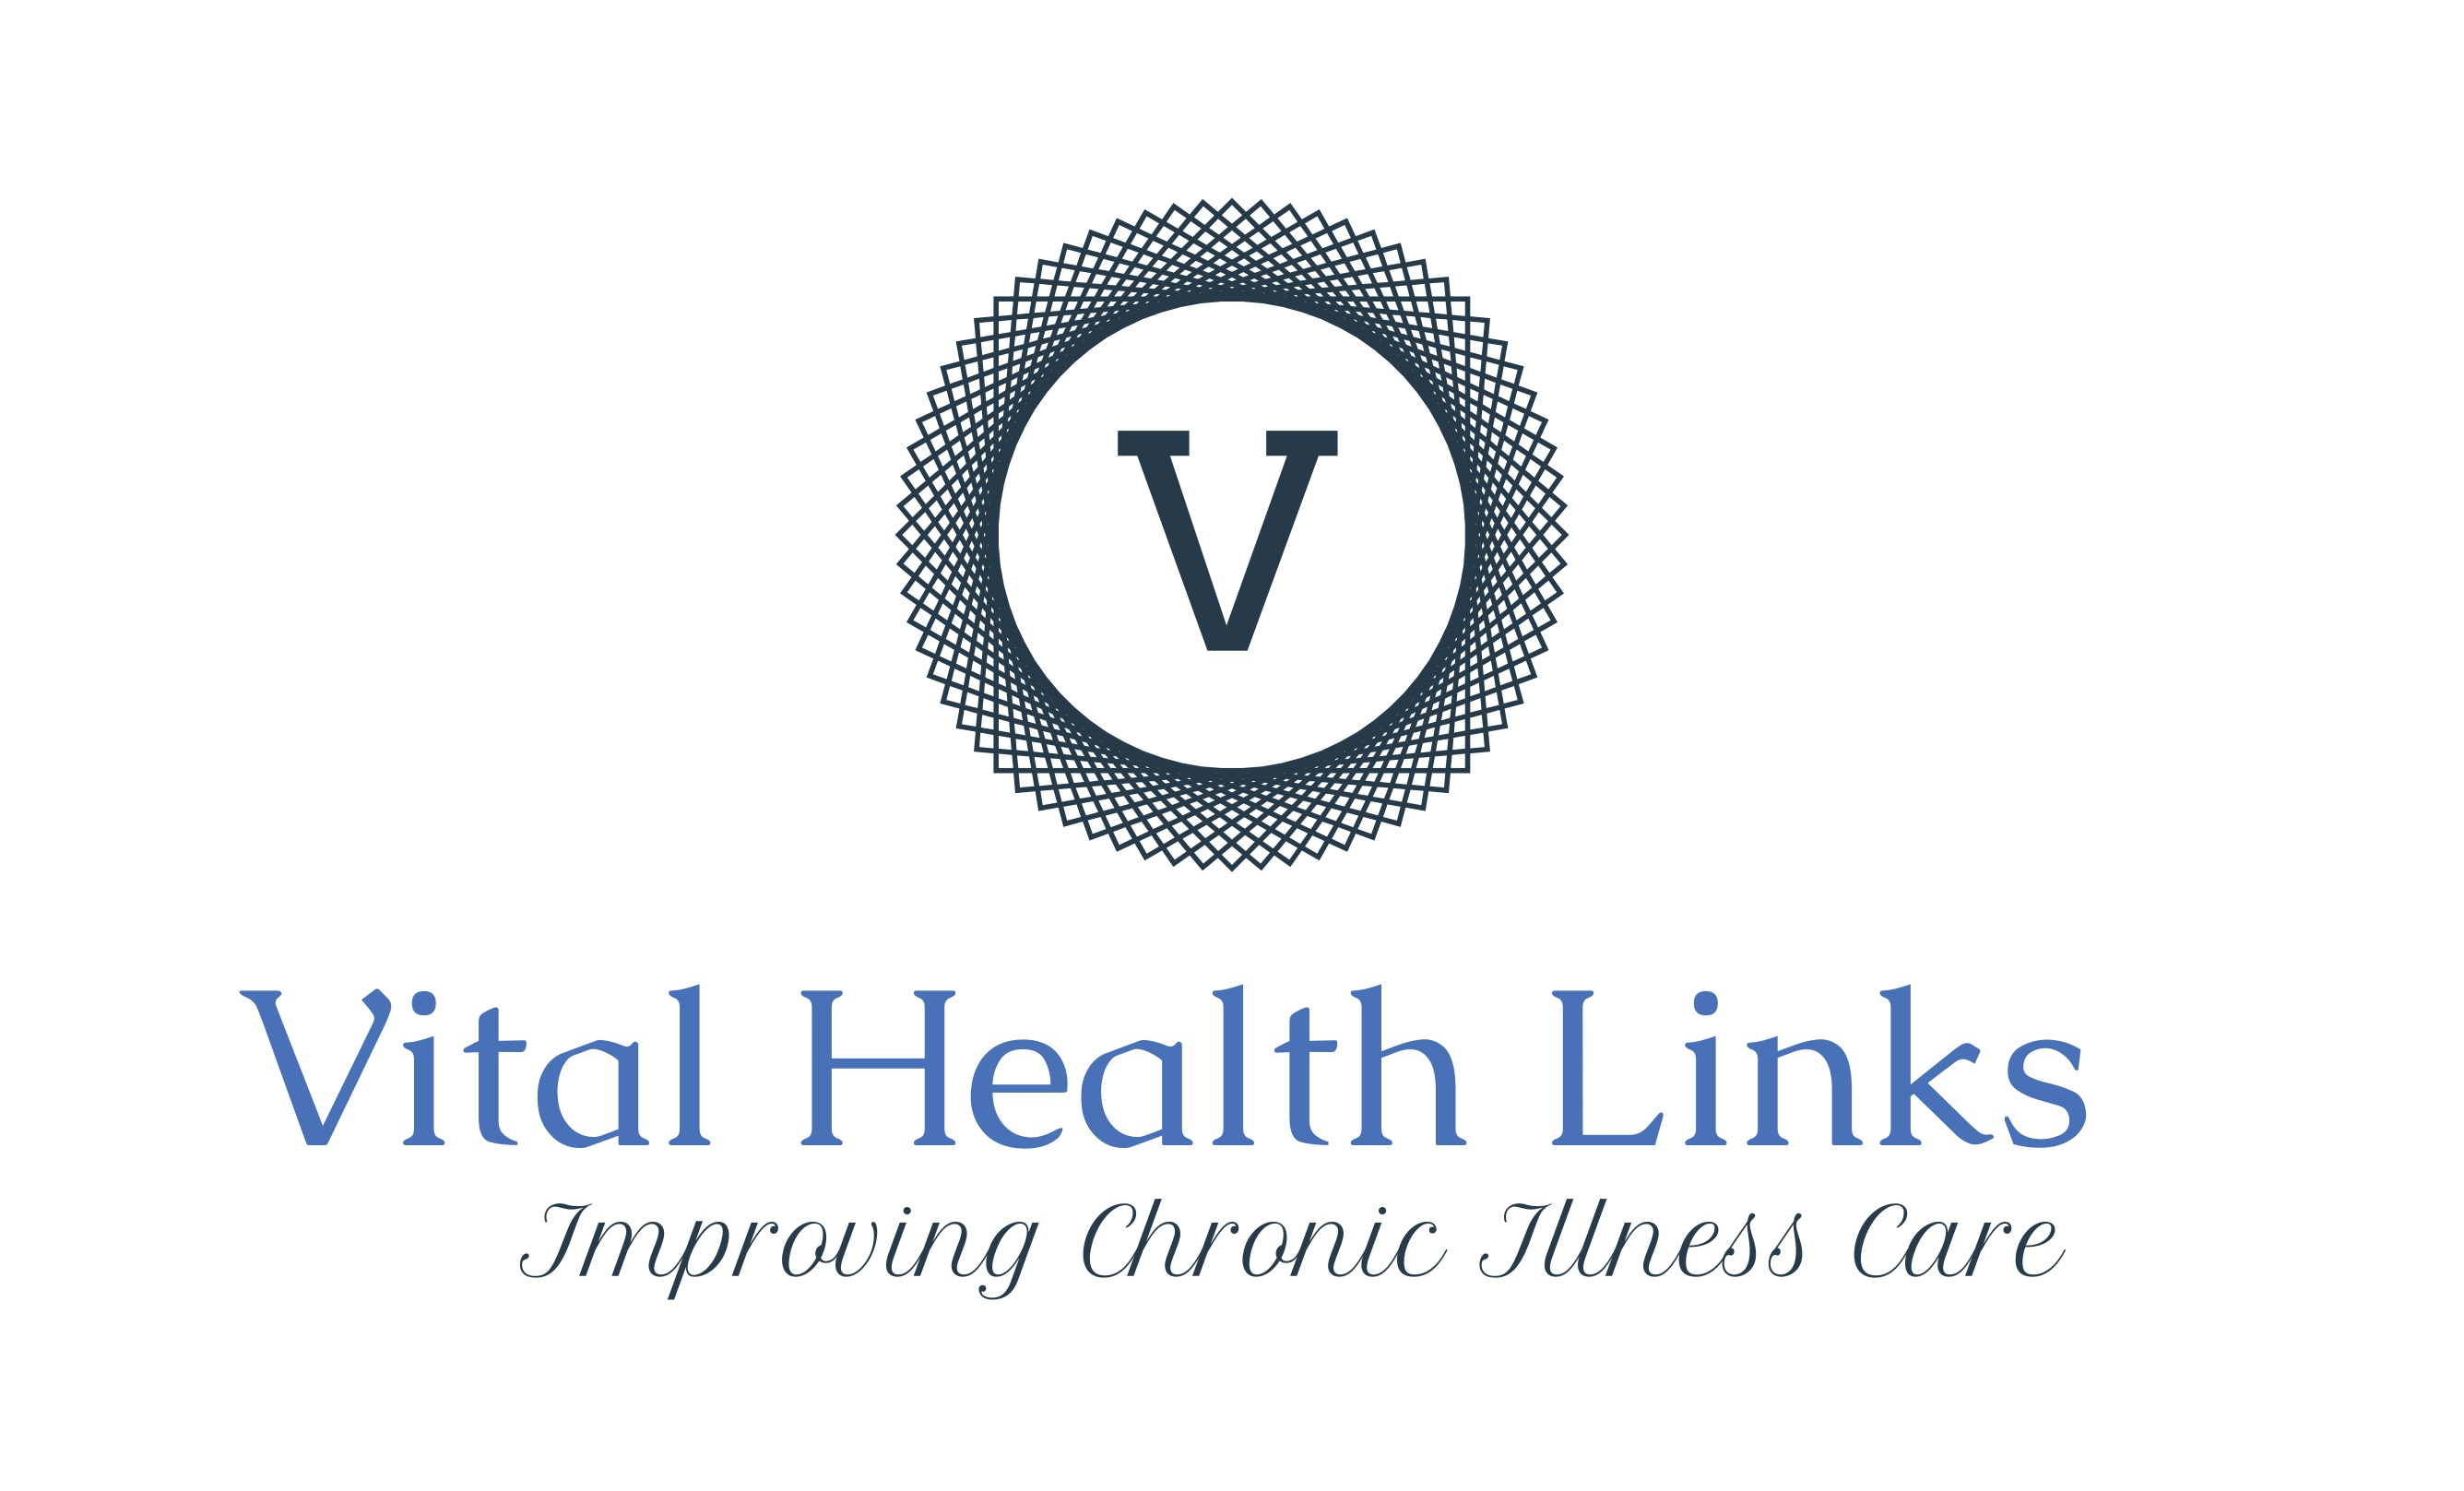 Vital Health Links logo